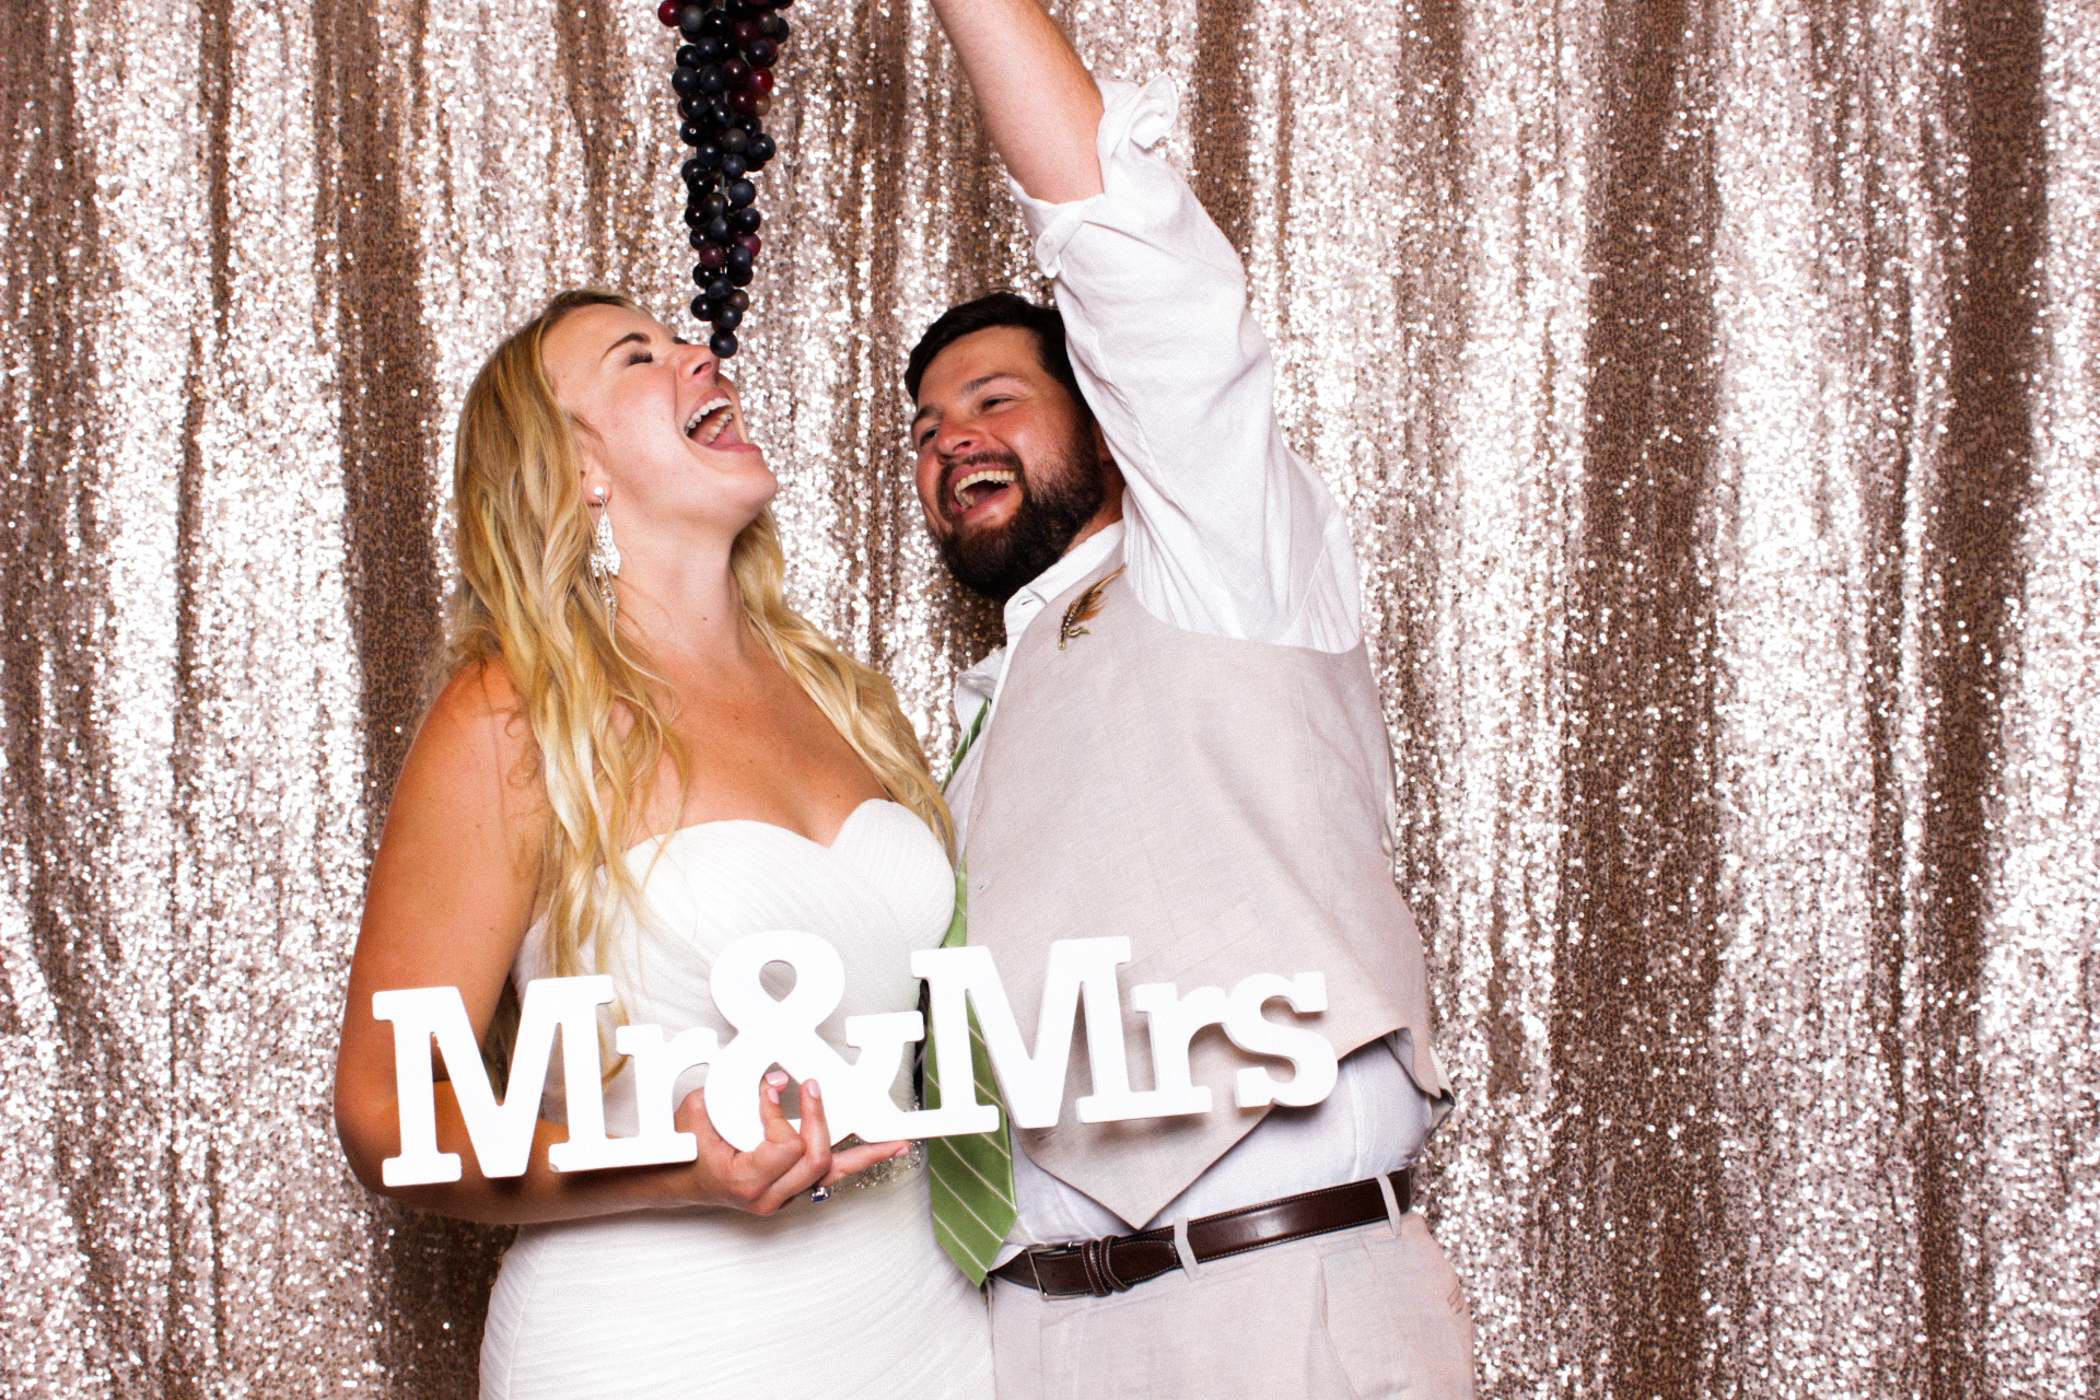 The_Reverie_Booth-Boca_Raton_Photobooth-Wedding_Photobooth_Florida-Florida_Photobooth_Rental-Wedding_Photobooth-073.jpg